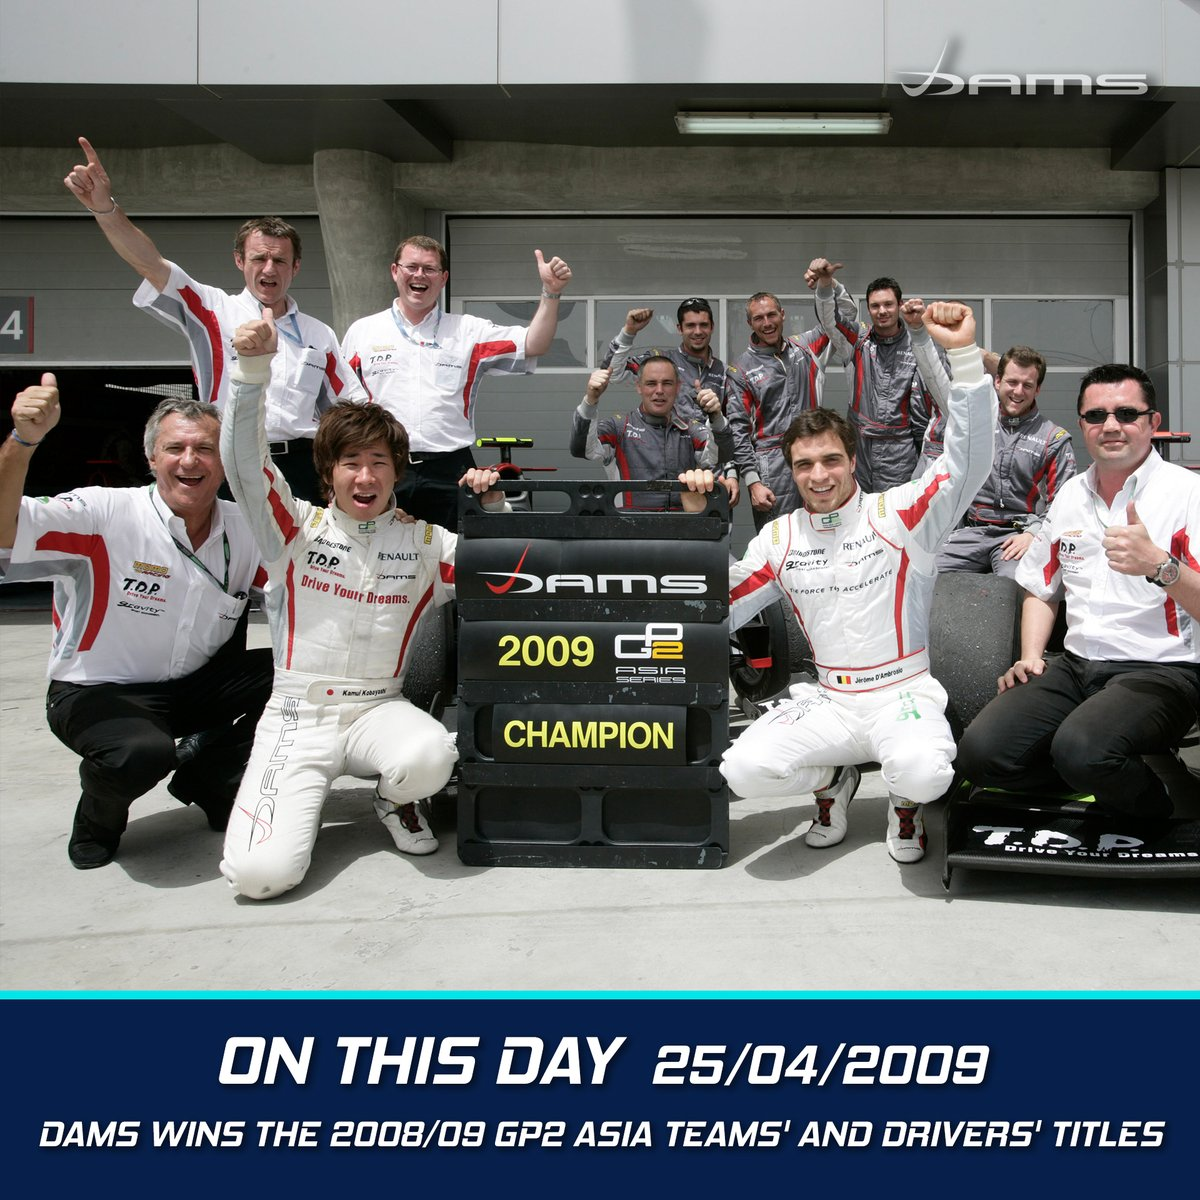 #OnThisDay DAMS won the 2008/09 GP2 Asia title, with @kamui_kobayashi and @thereal_JDA finishing first and second in the drivers' championship!  #AllezLesBleus https://t.co/Qn9iMQ0swB